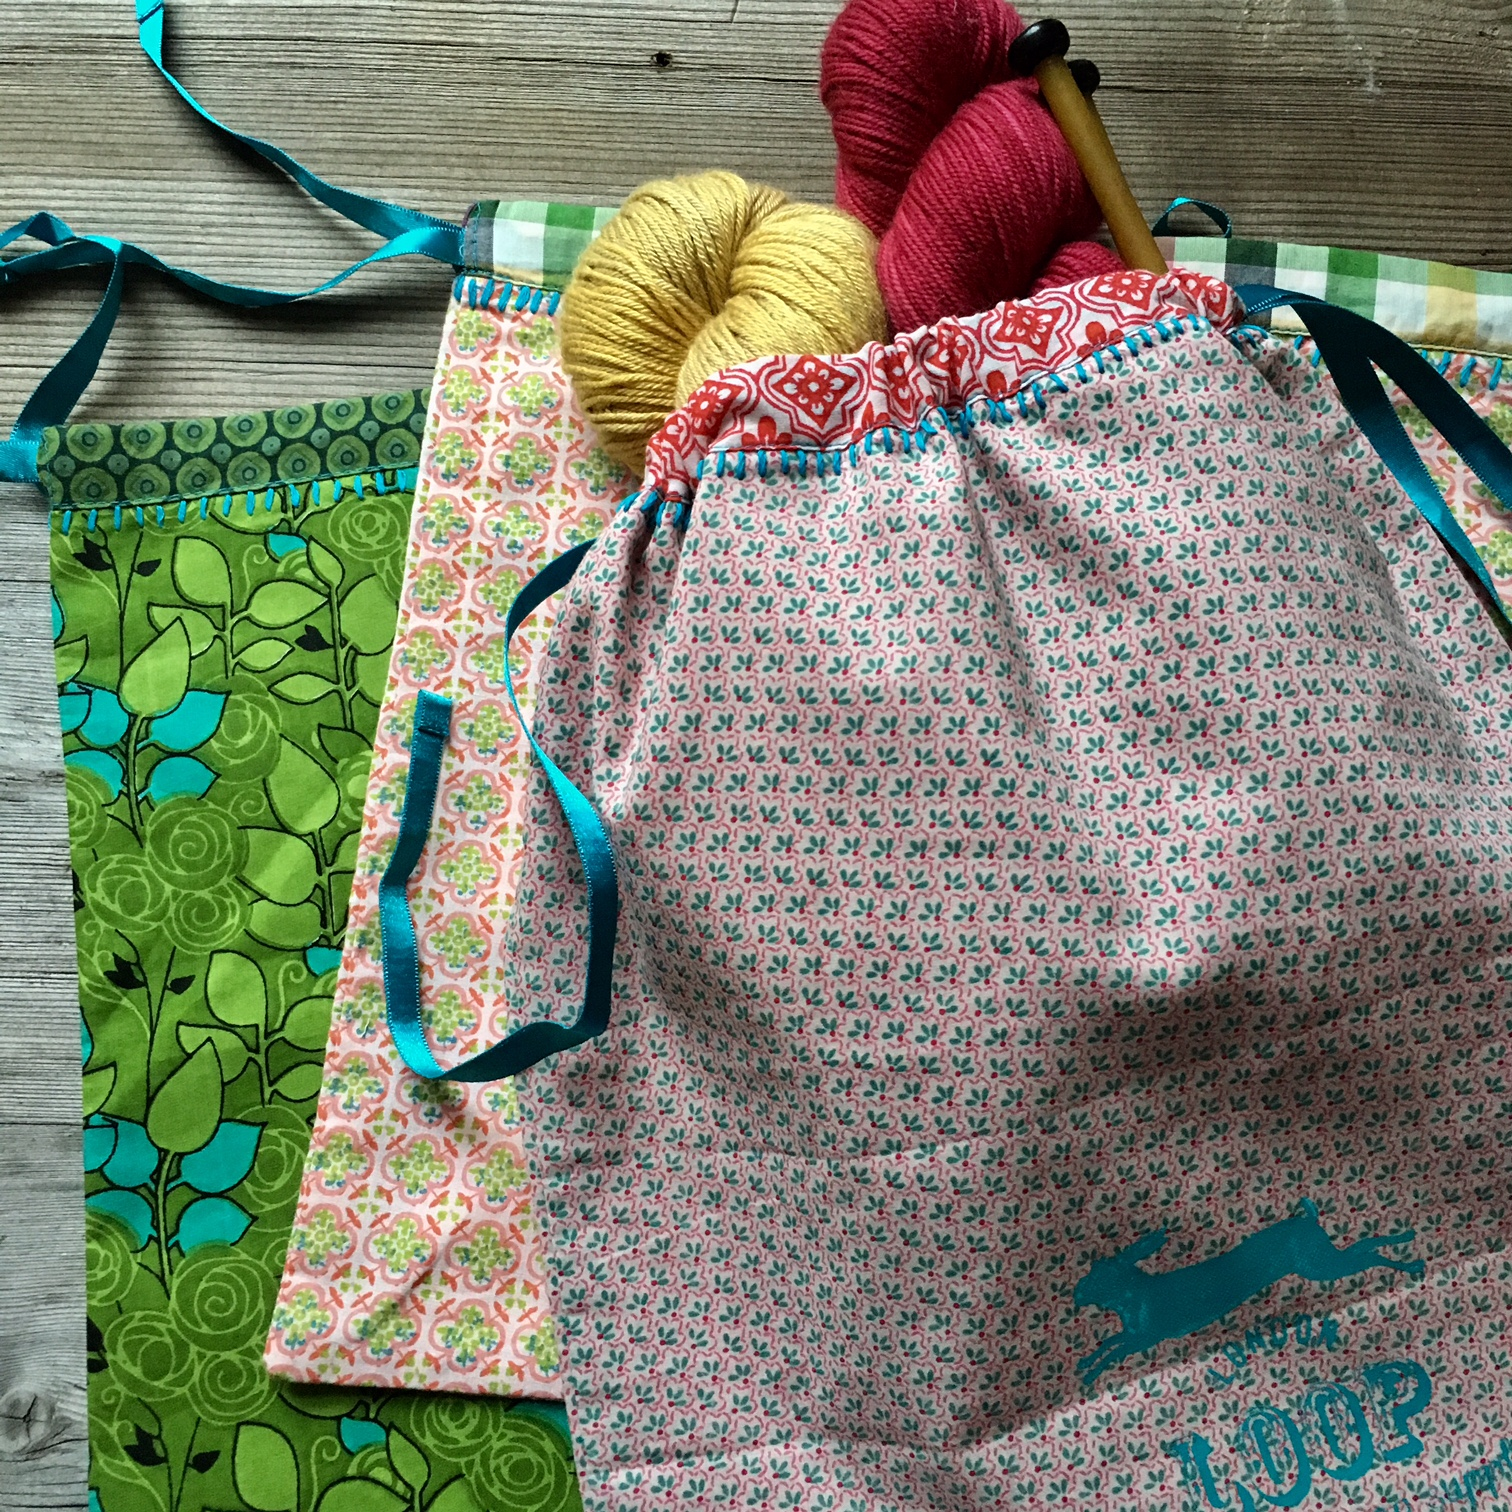 Loop's Handmade Project Bags and a trip to India